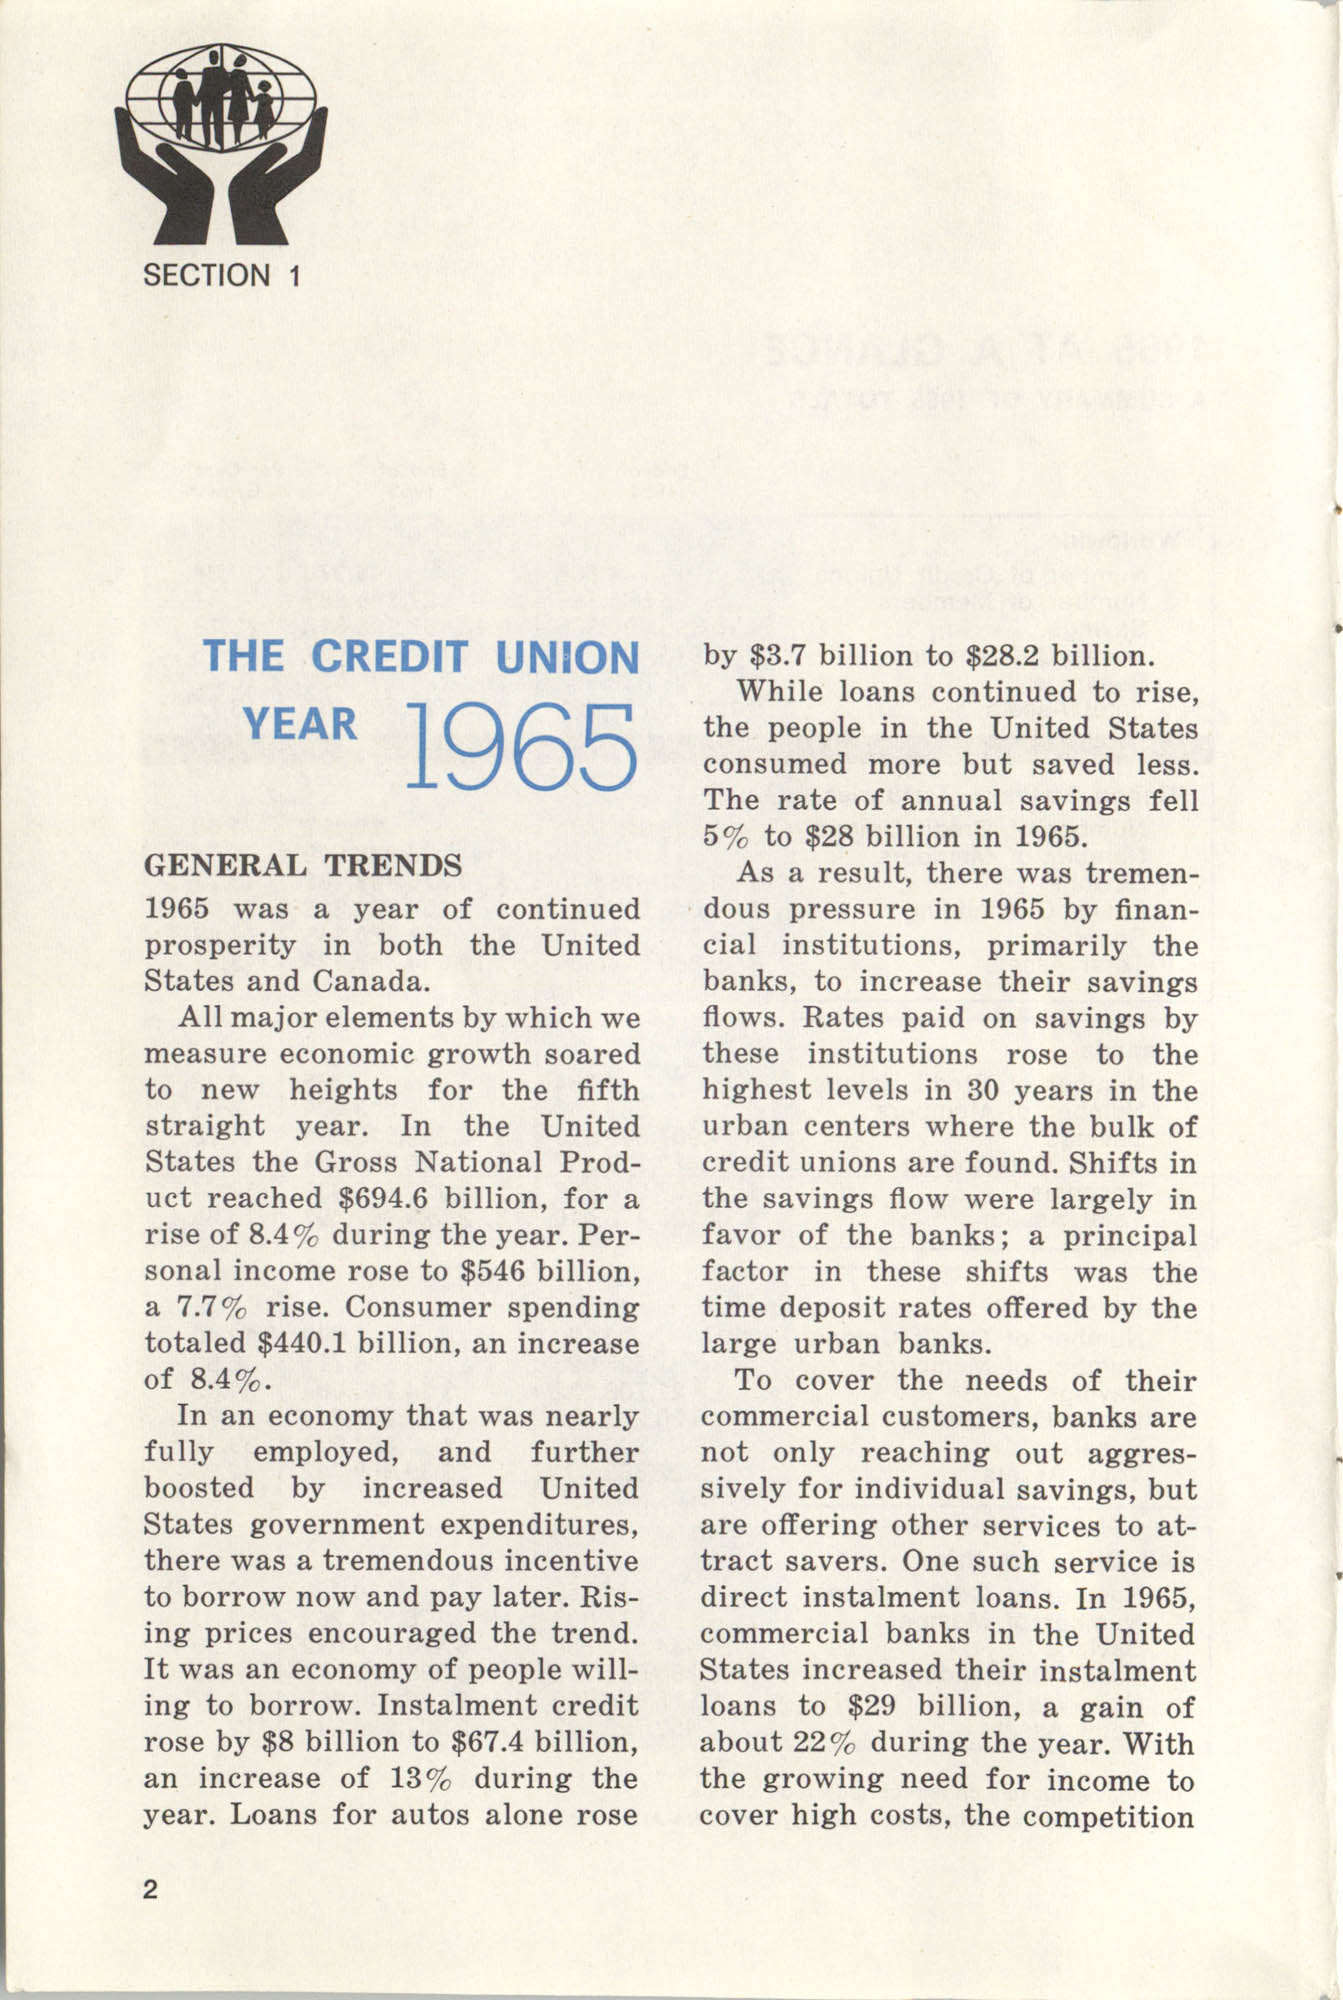 International Credit Union Yearbook, Page 2